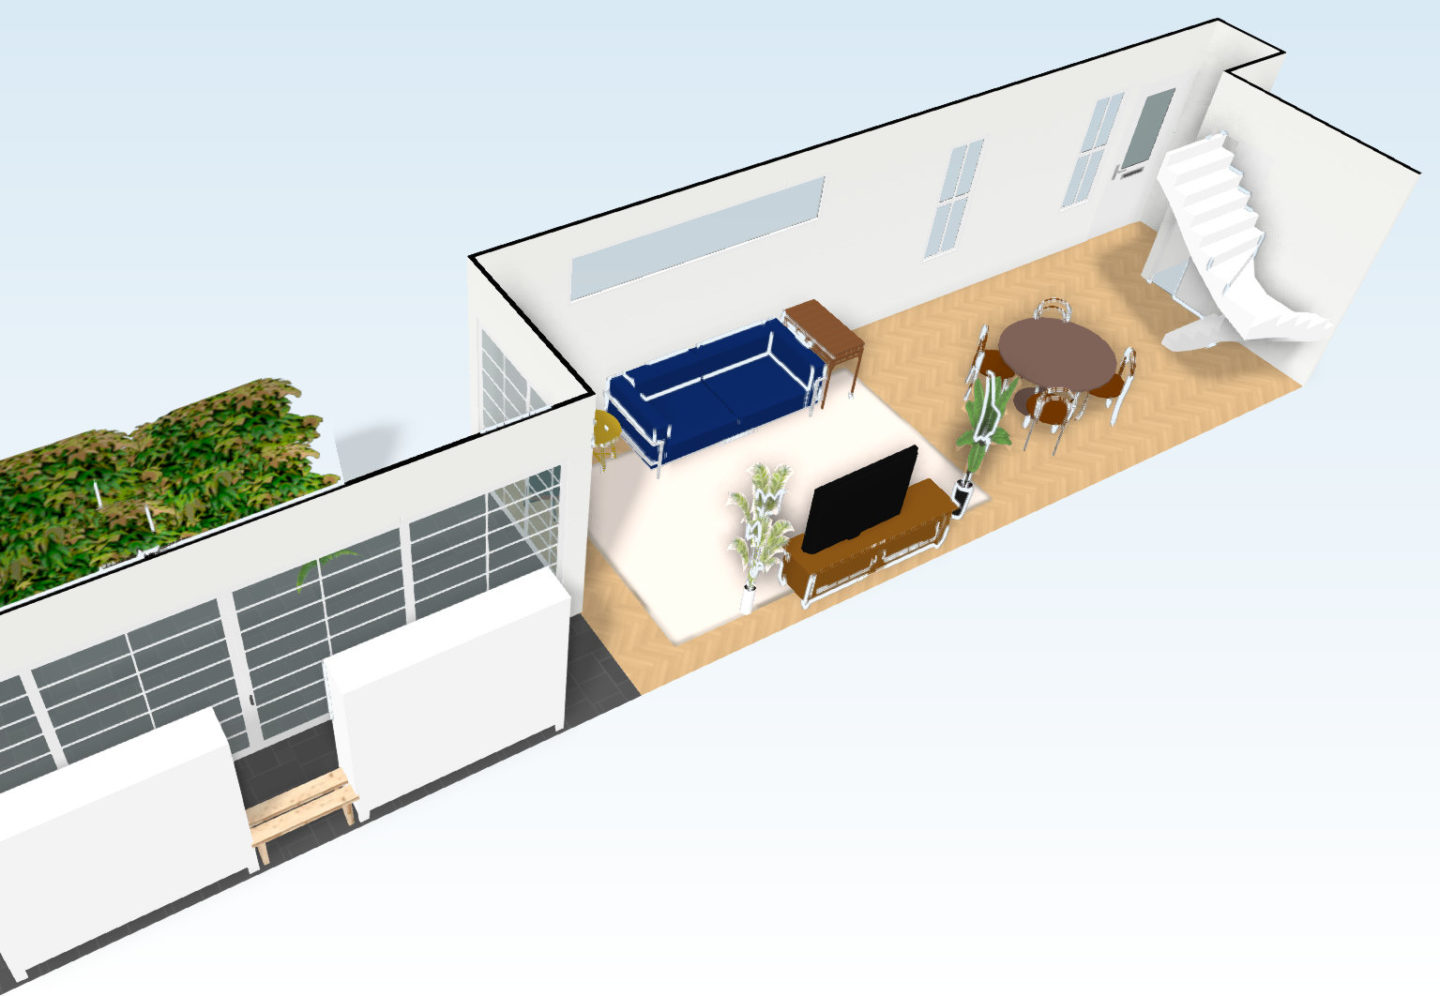 3D Rendering of Potential 1st Floor Extension Showing Living and Dining Area